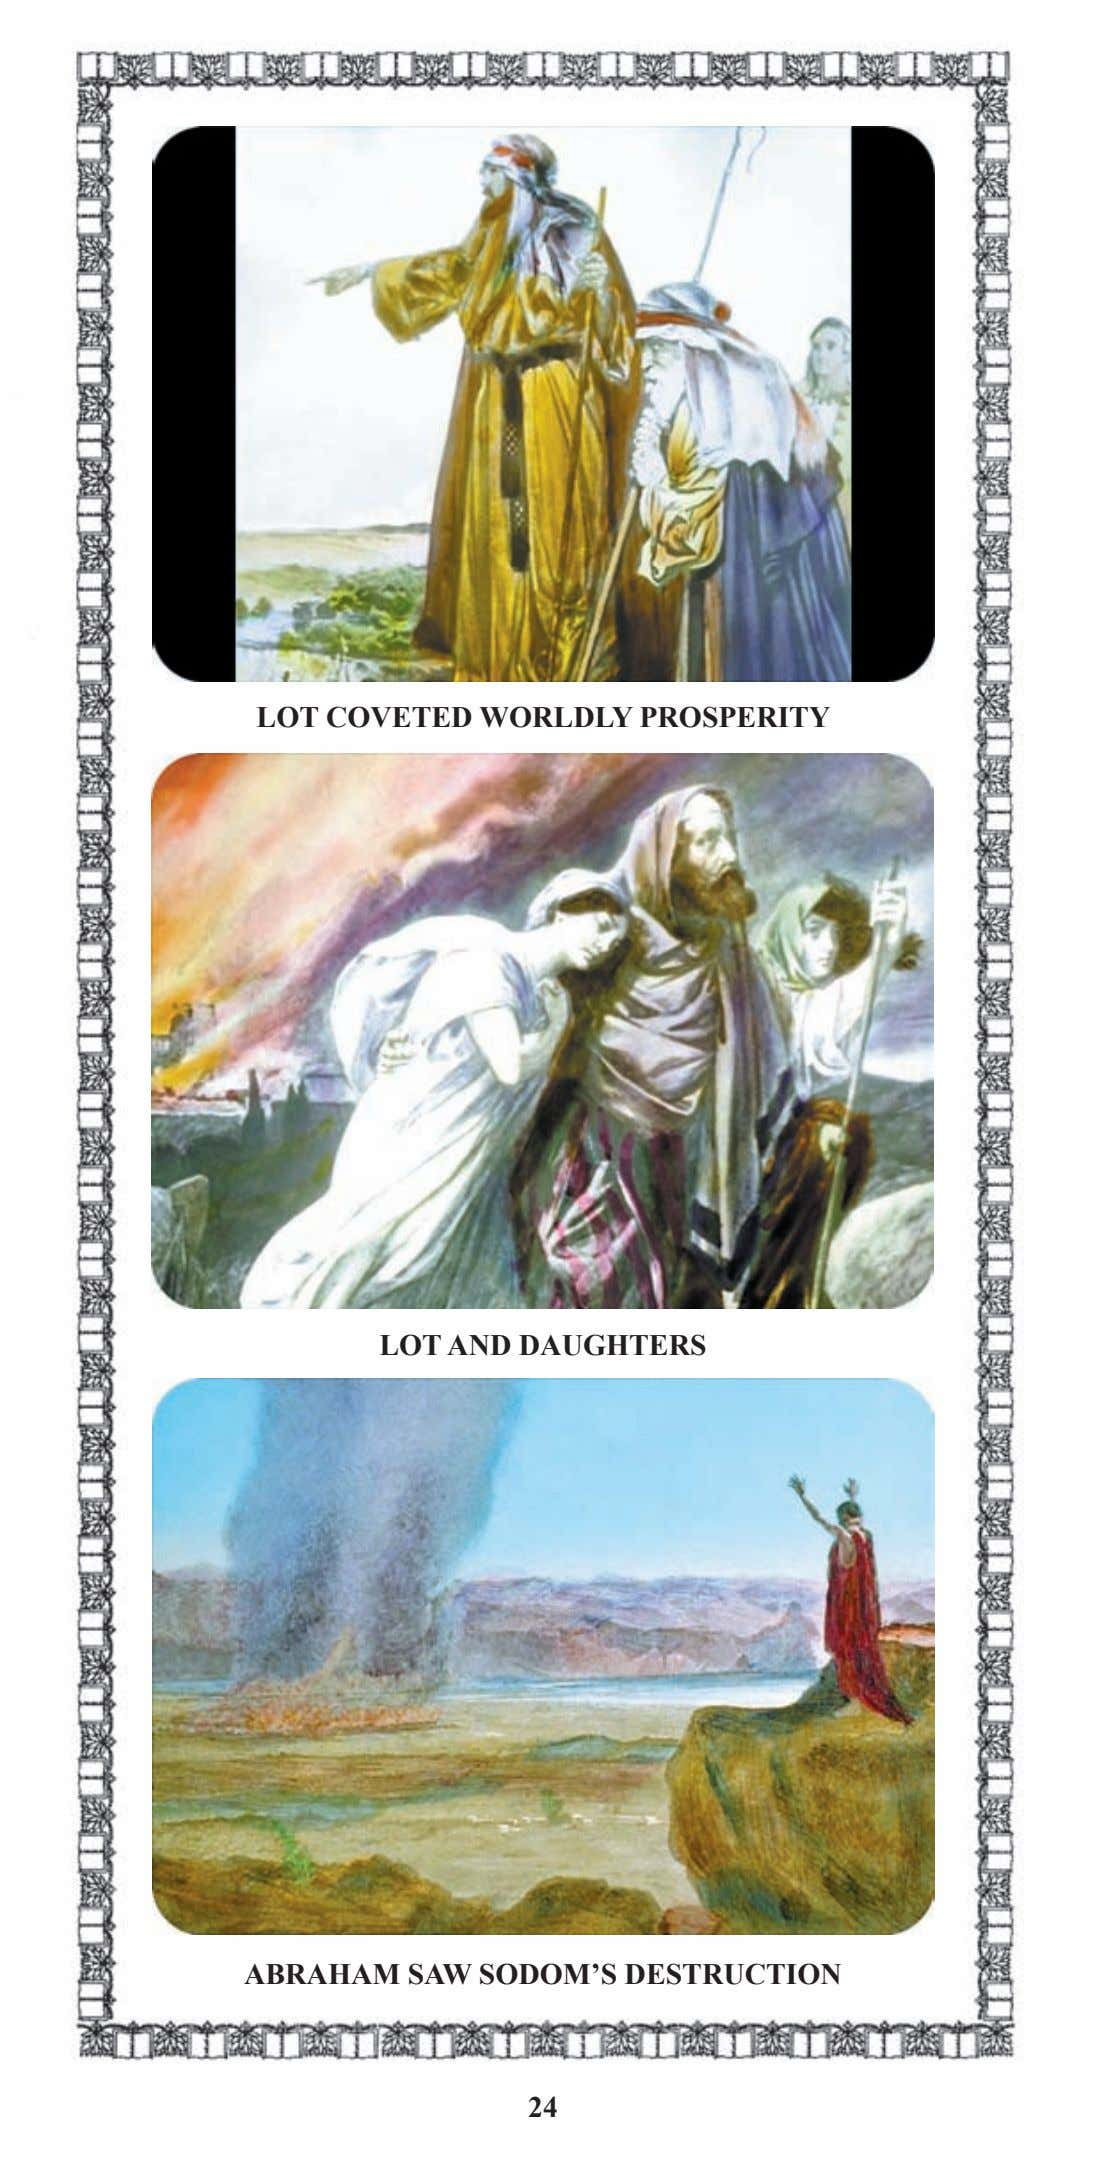 LOT COVETED WORLDLY PROSPERITY LOT AND DAUGHTERS ABRAHAM SAW SODOM'S DESTRUCTION 24